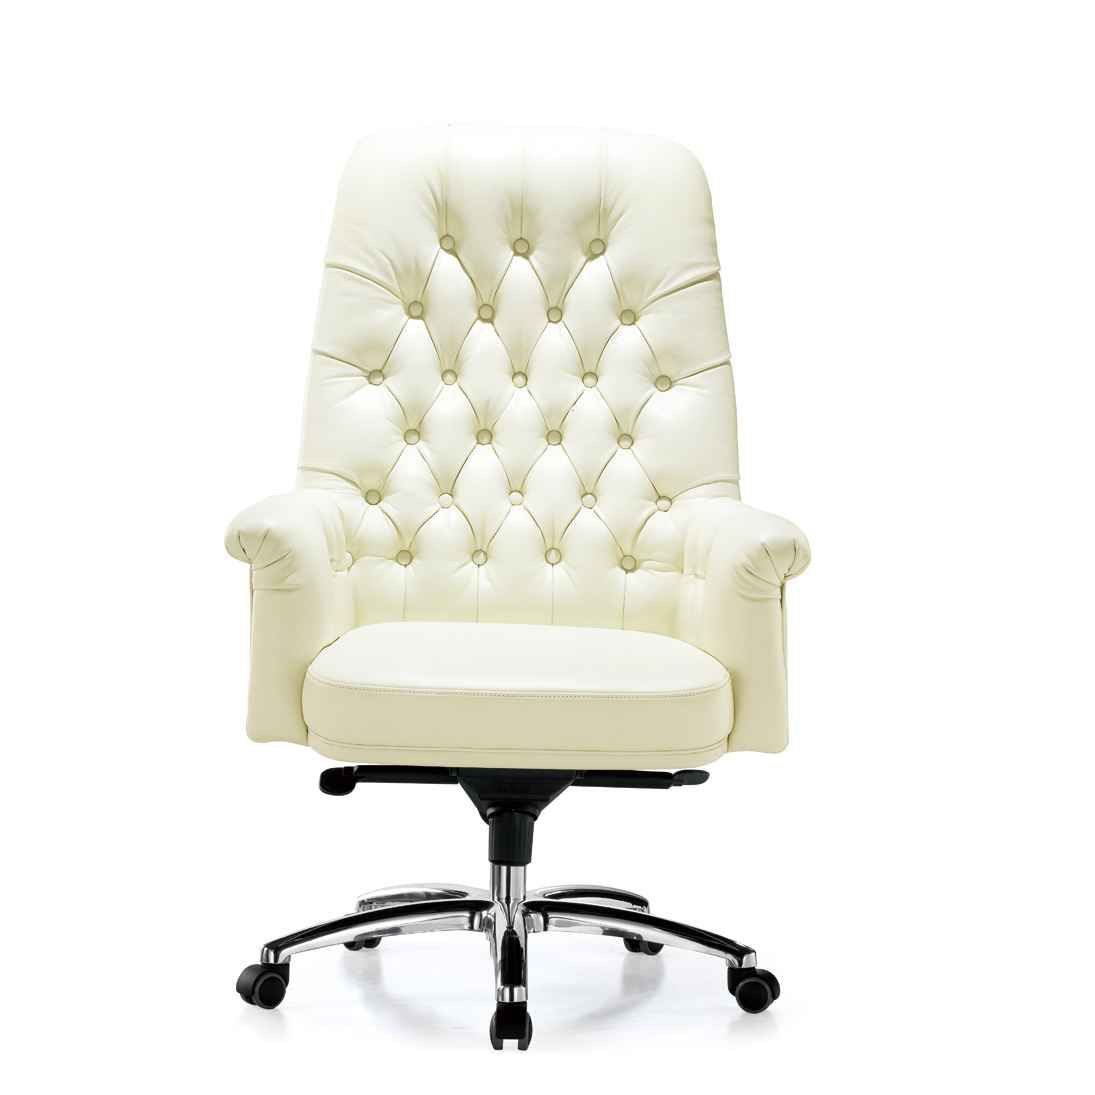 Swivel White Leather Desk Chairs for Office